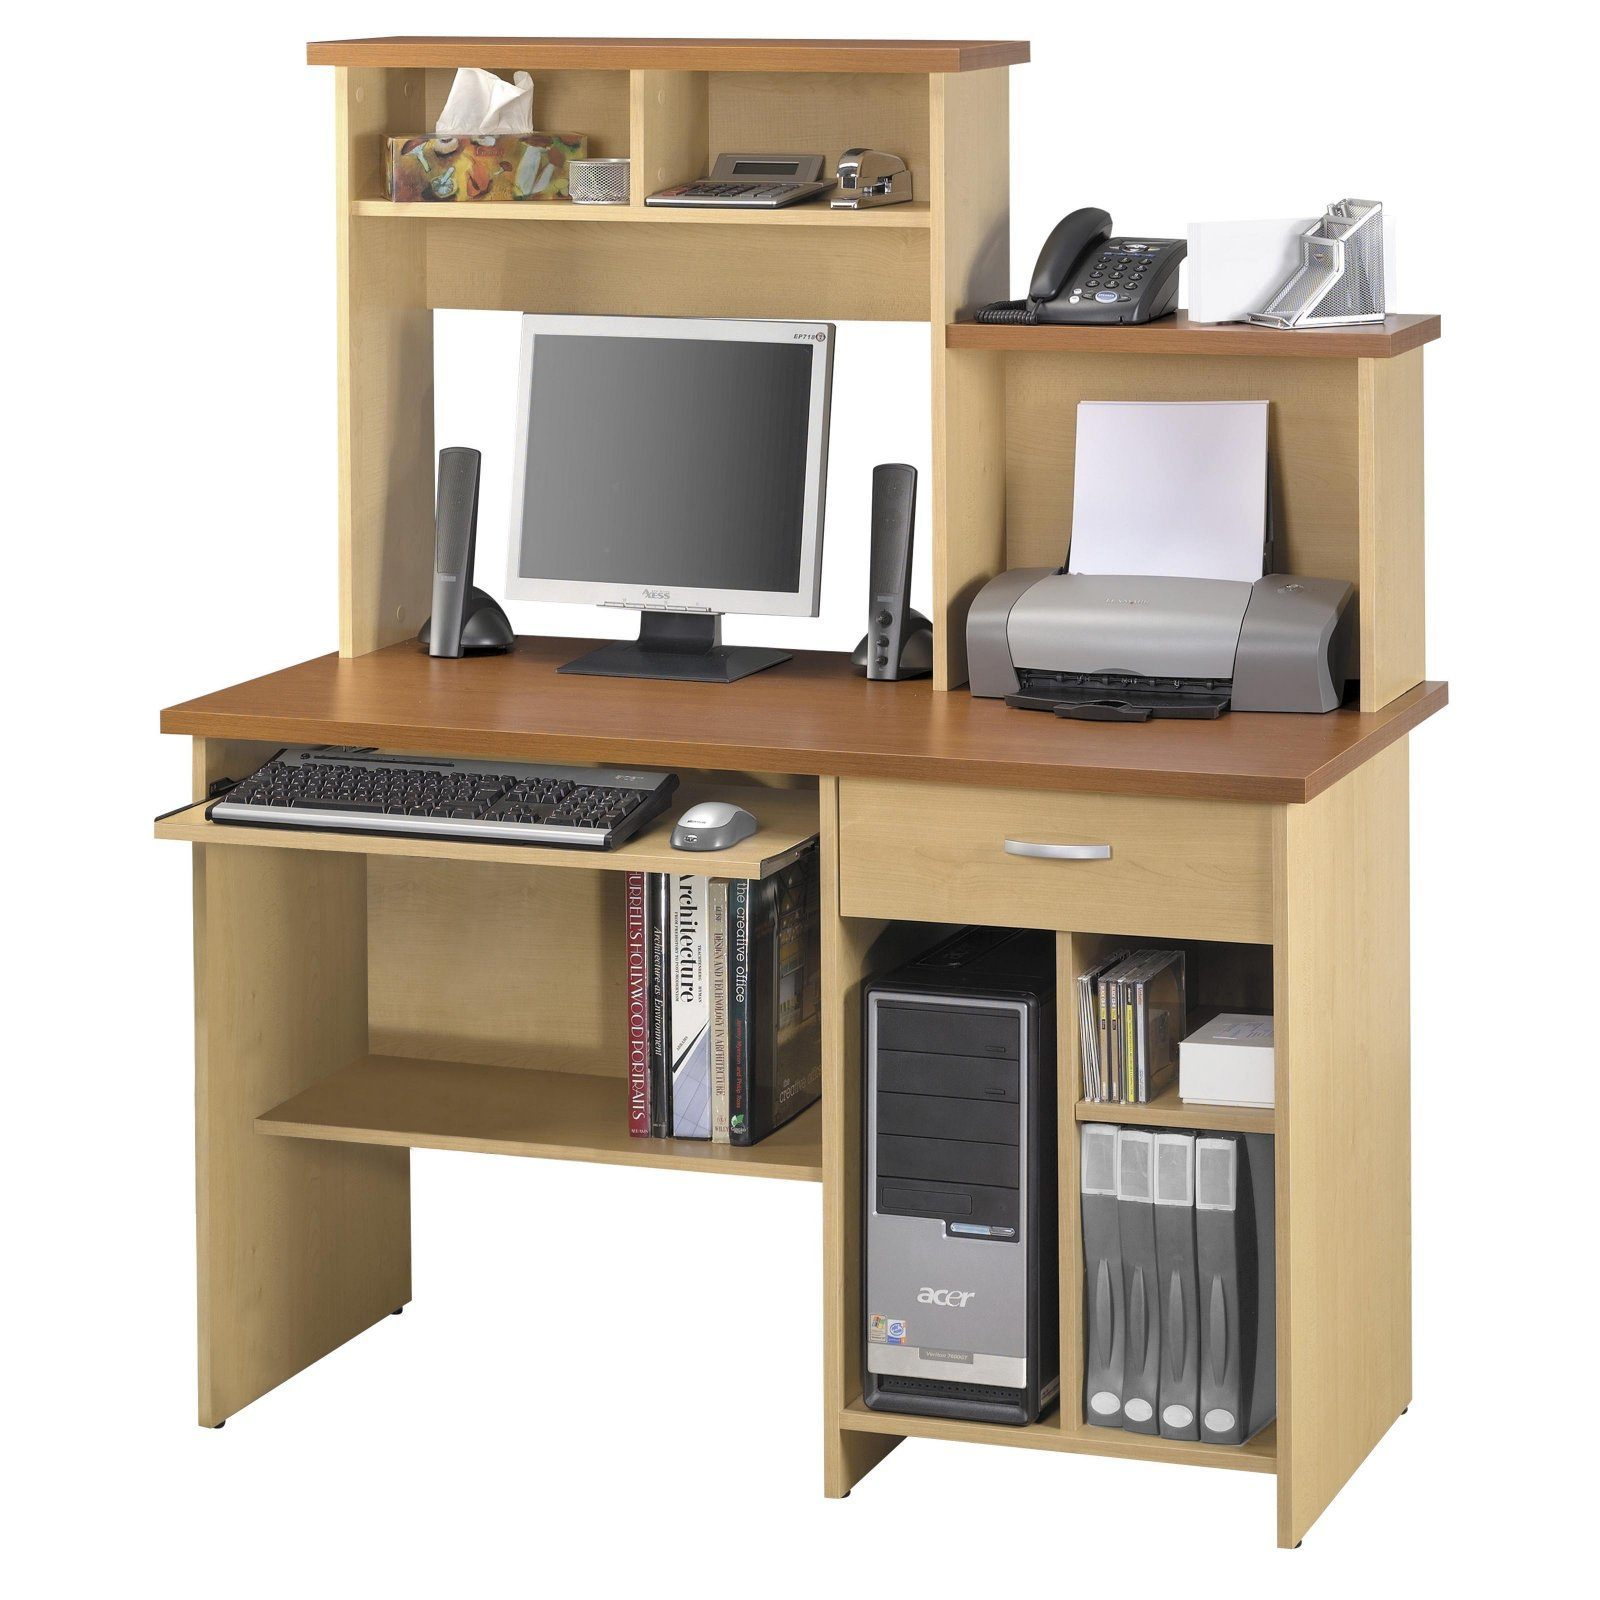 Combined work station and computer desk ideas for Best home office computer 2015